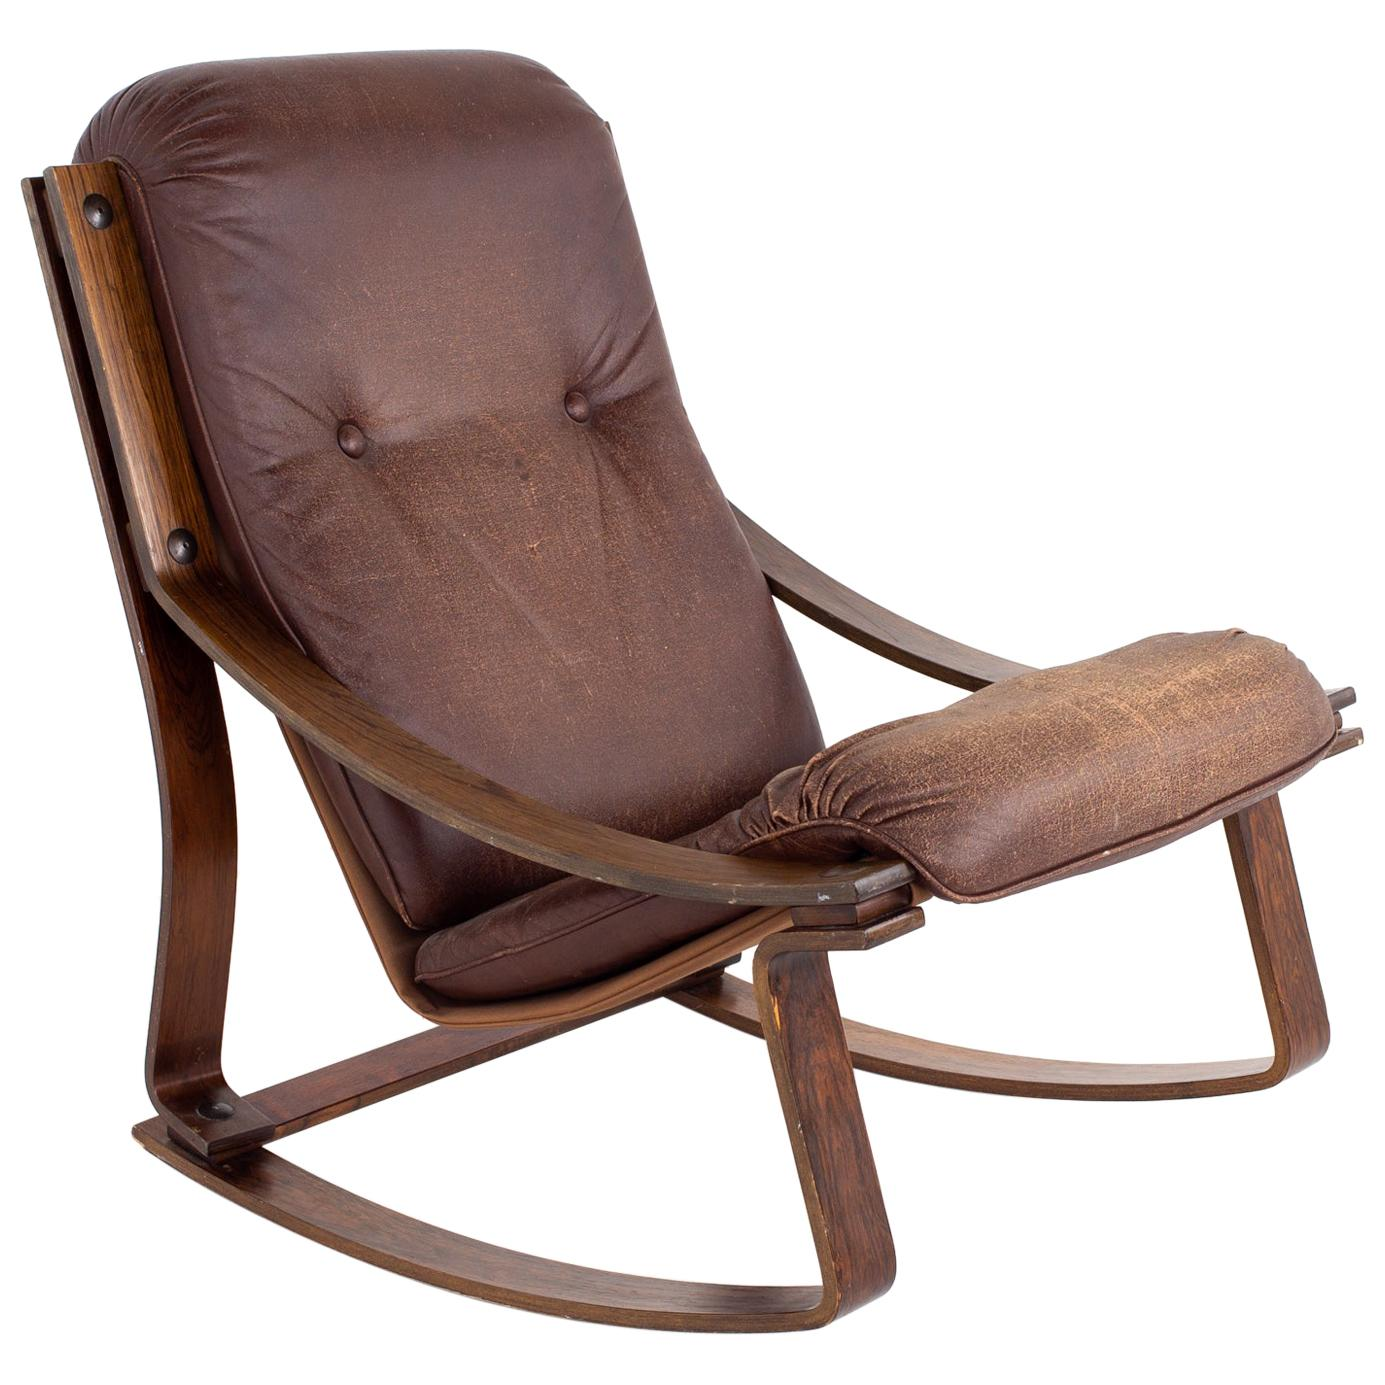 Westnofa Mid Century Rosewood and Brown Leather Rocking Chair